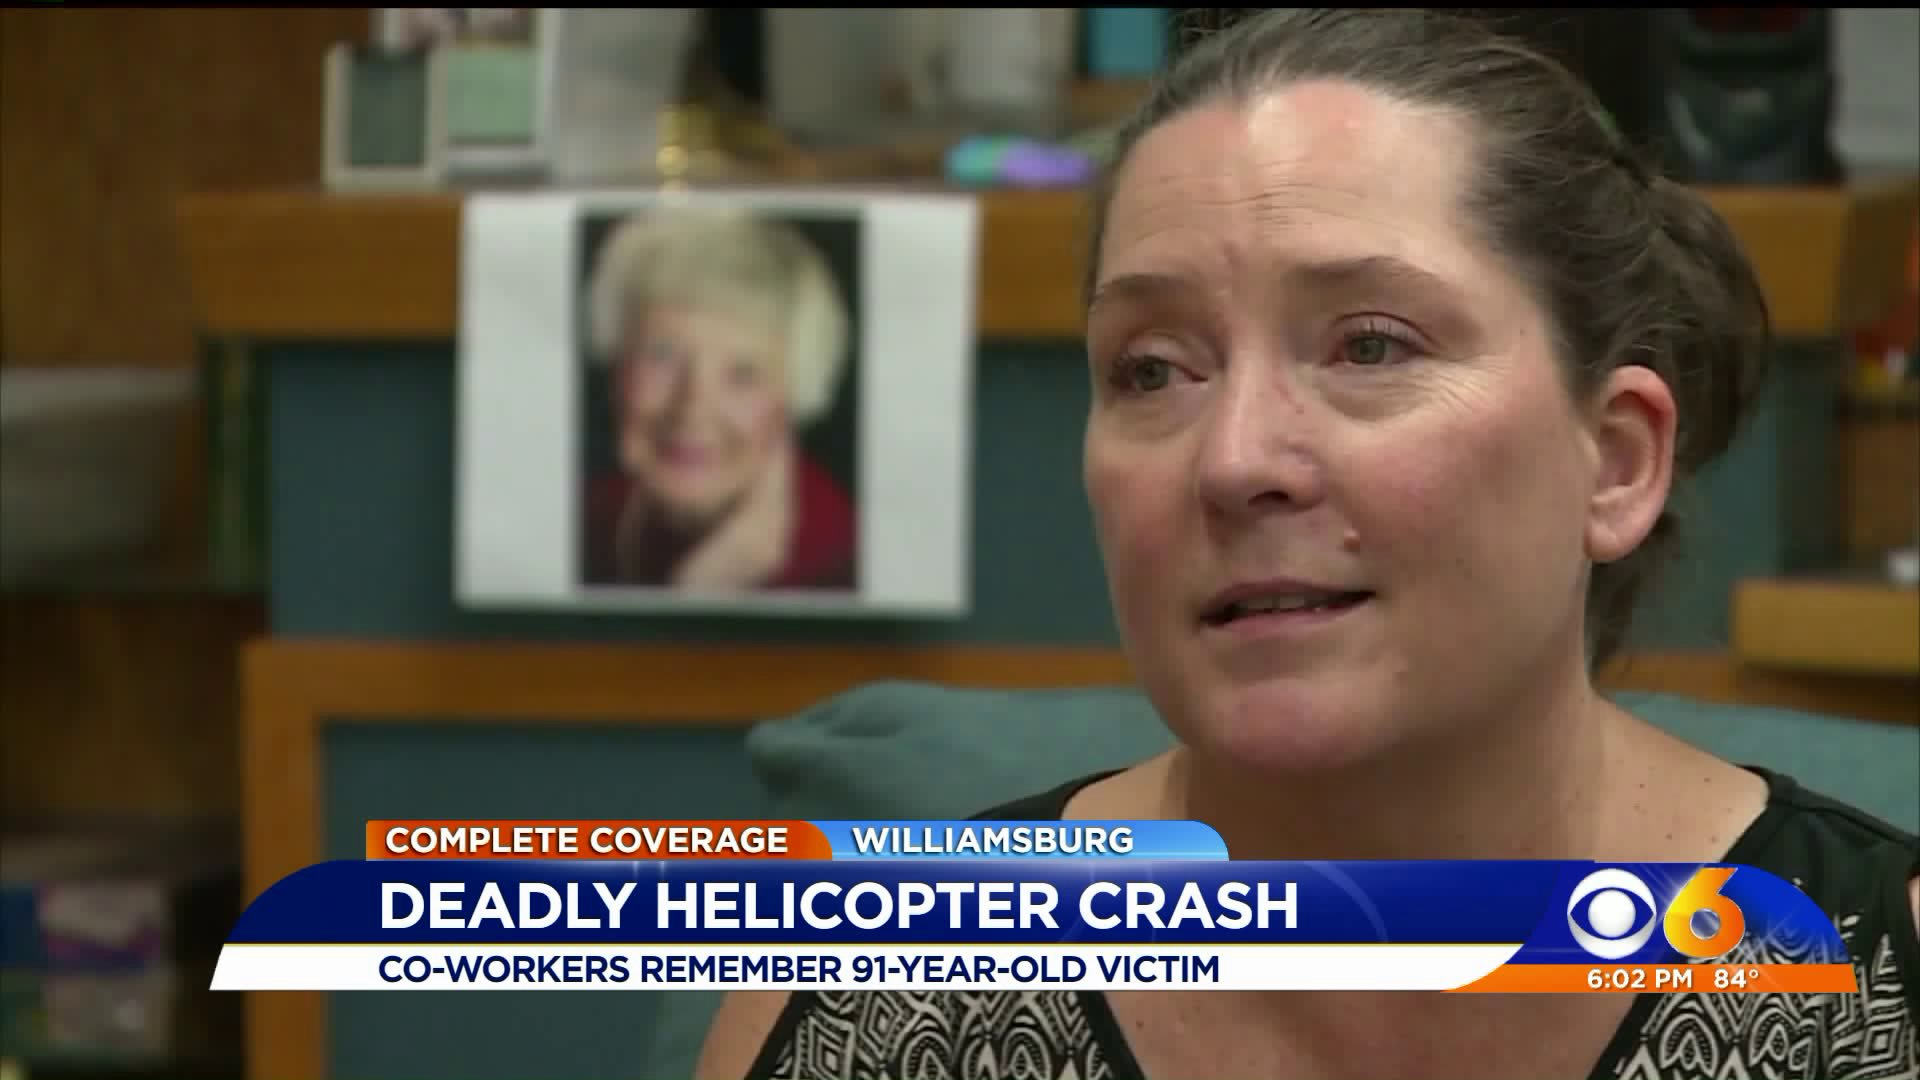 91-year-old woman killed in helicopter crash had 'sparkle in her eye'